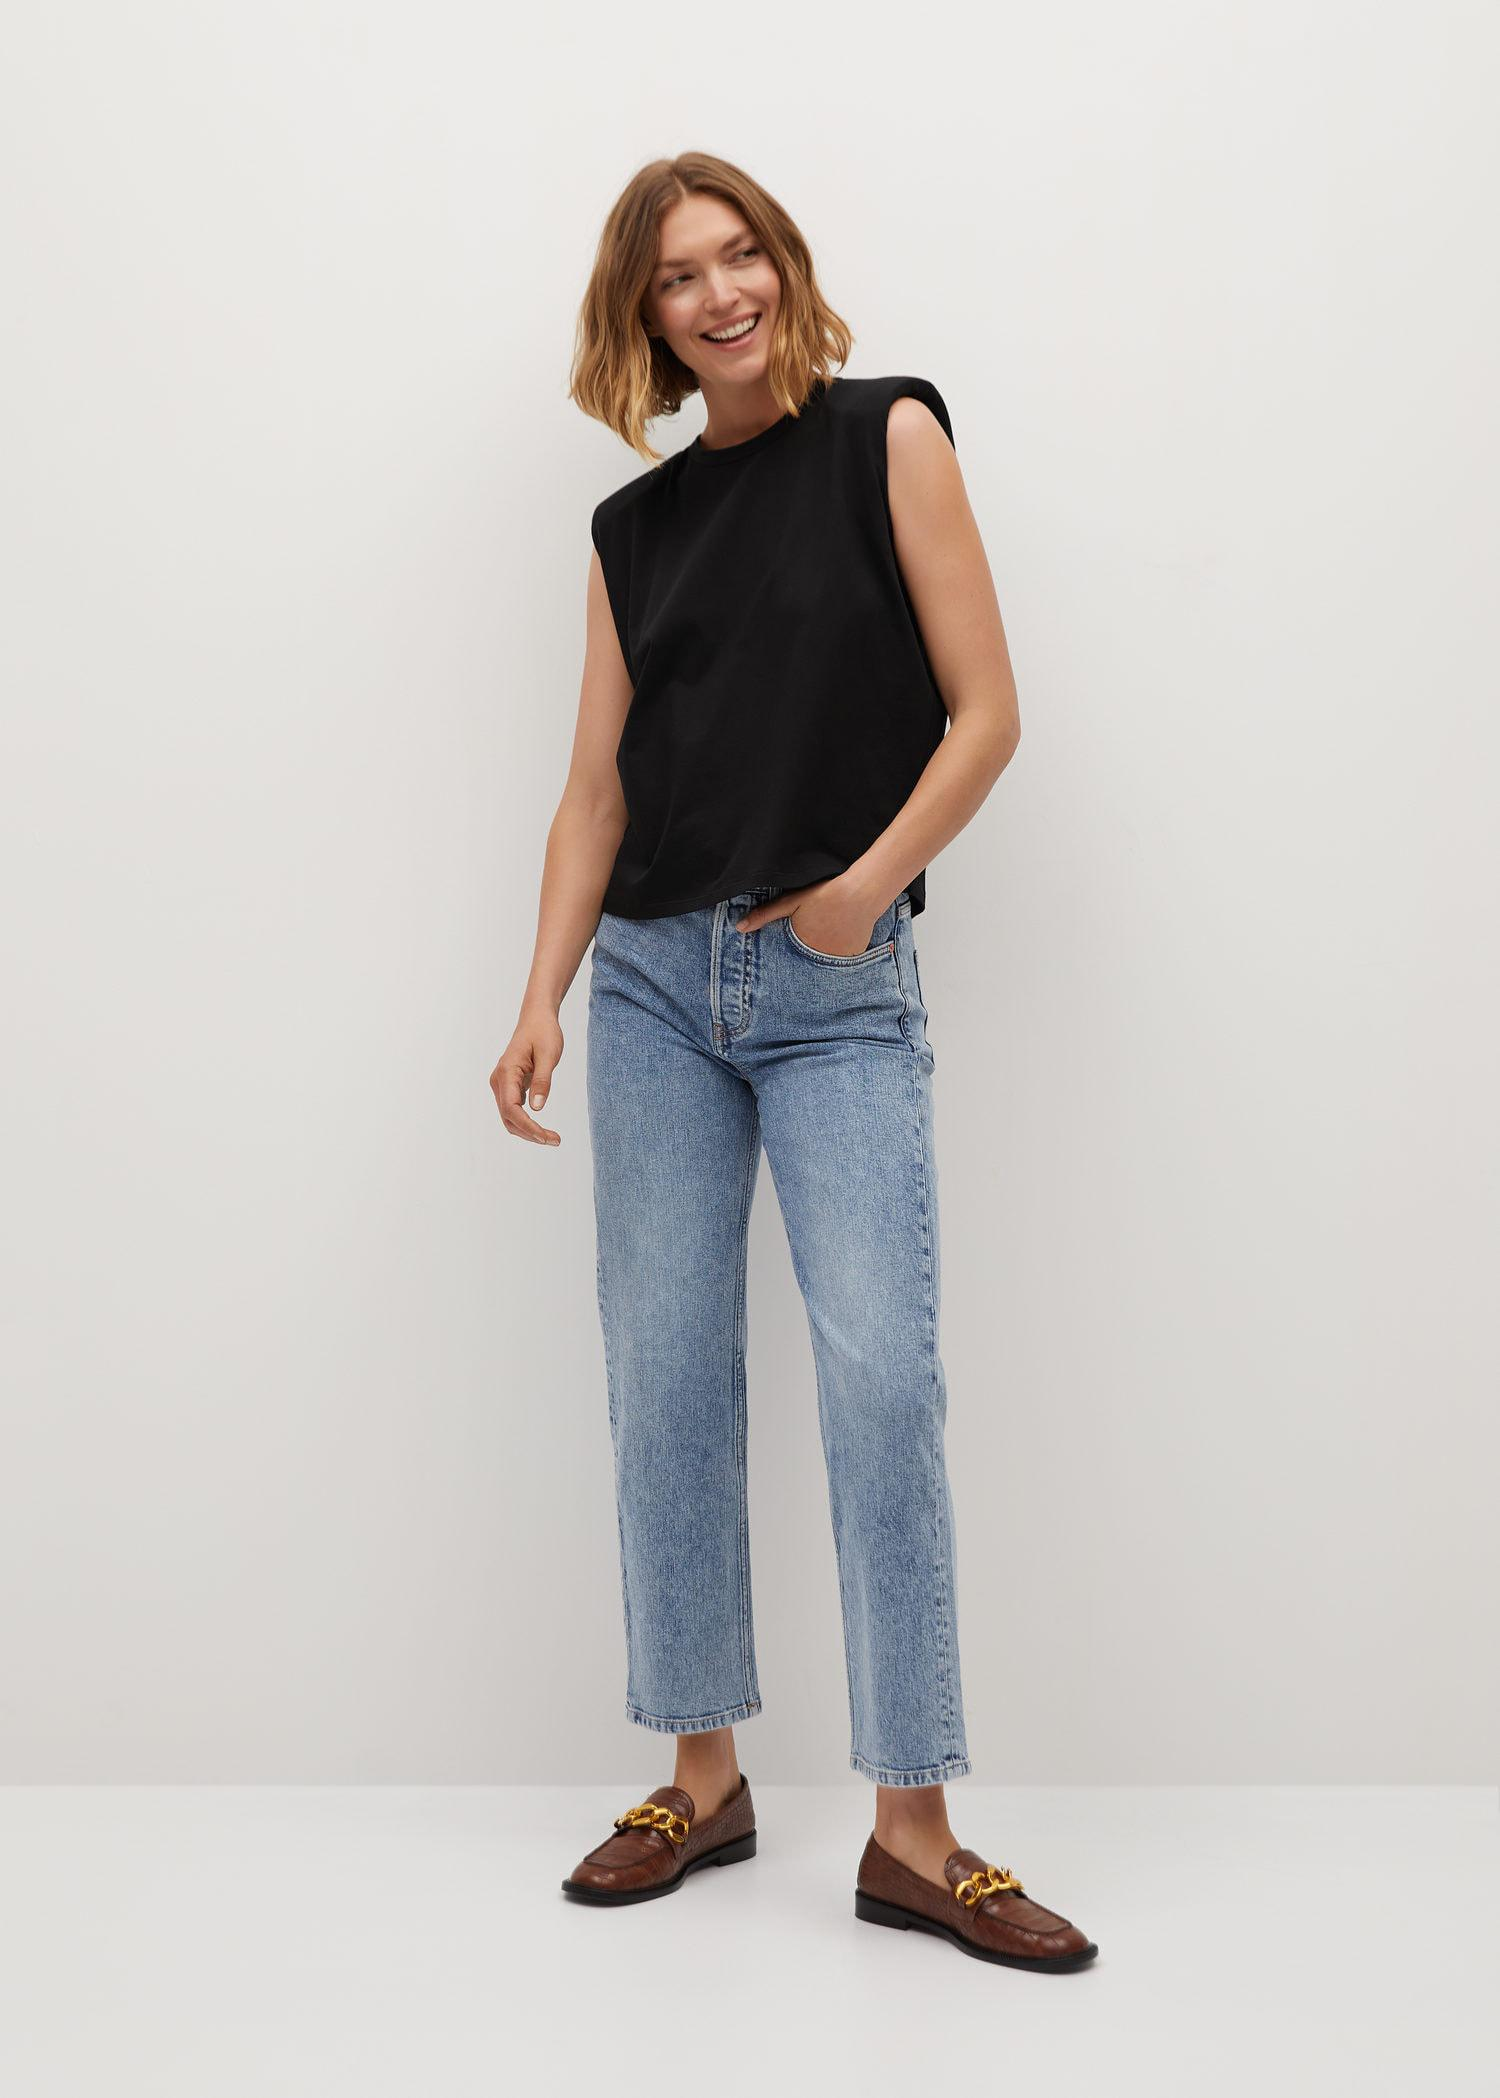 Organic cotton t-shirt with shoulder pads 1